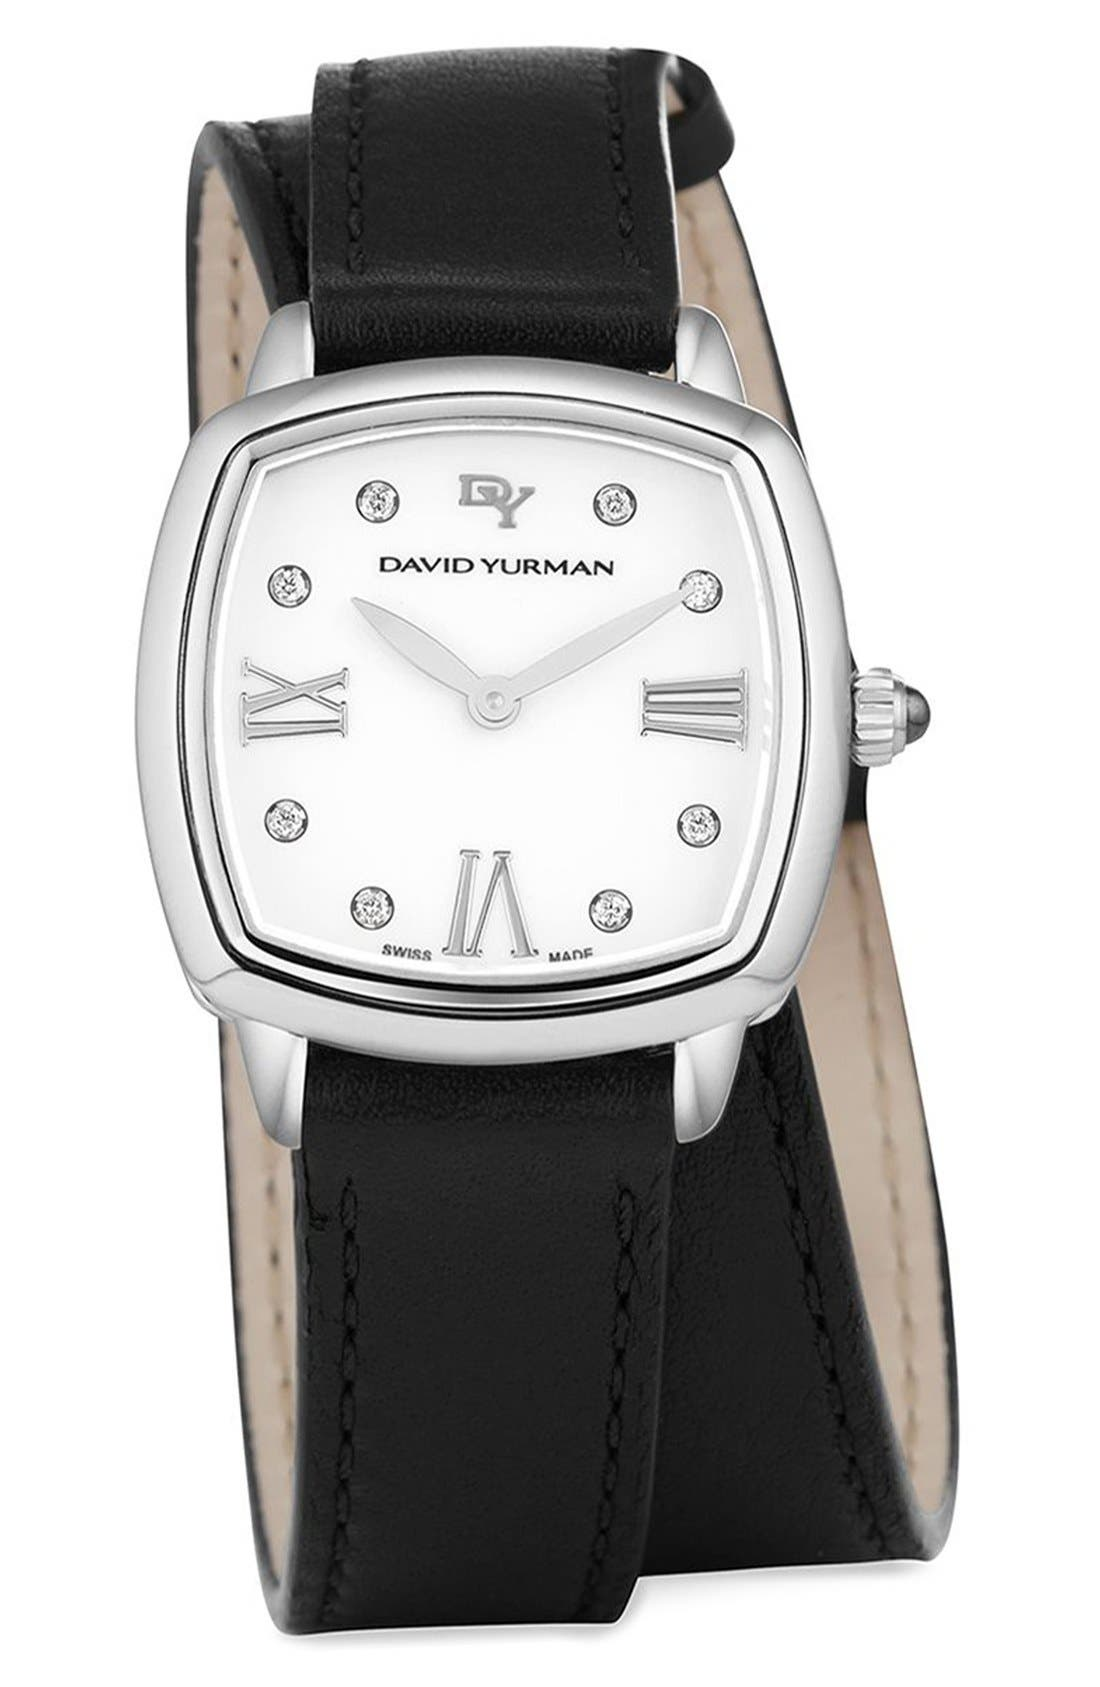 Alternate Image 1 Selected - David Yurman 'Albion' 27mm Leather Swiss Quartz Watch with Diamonds